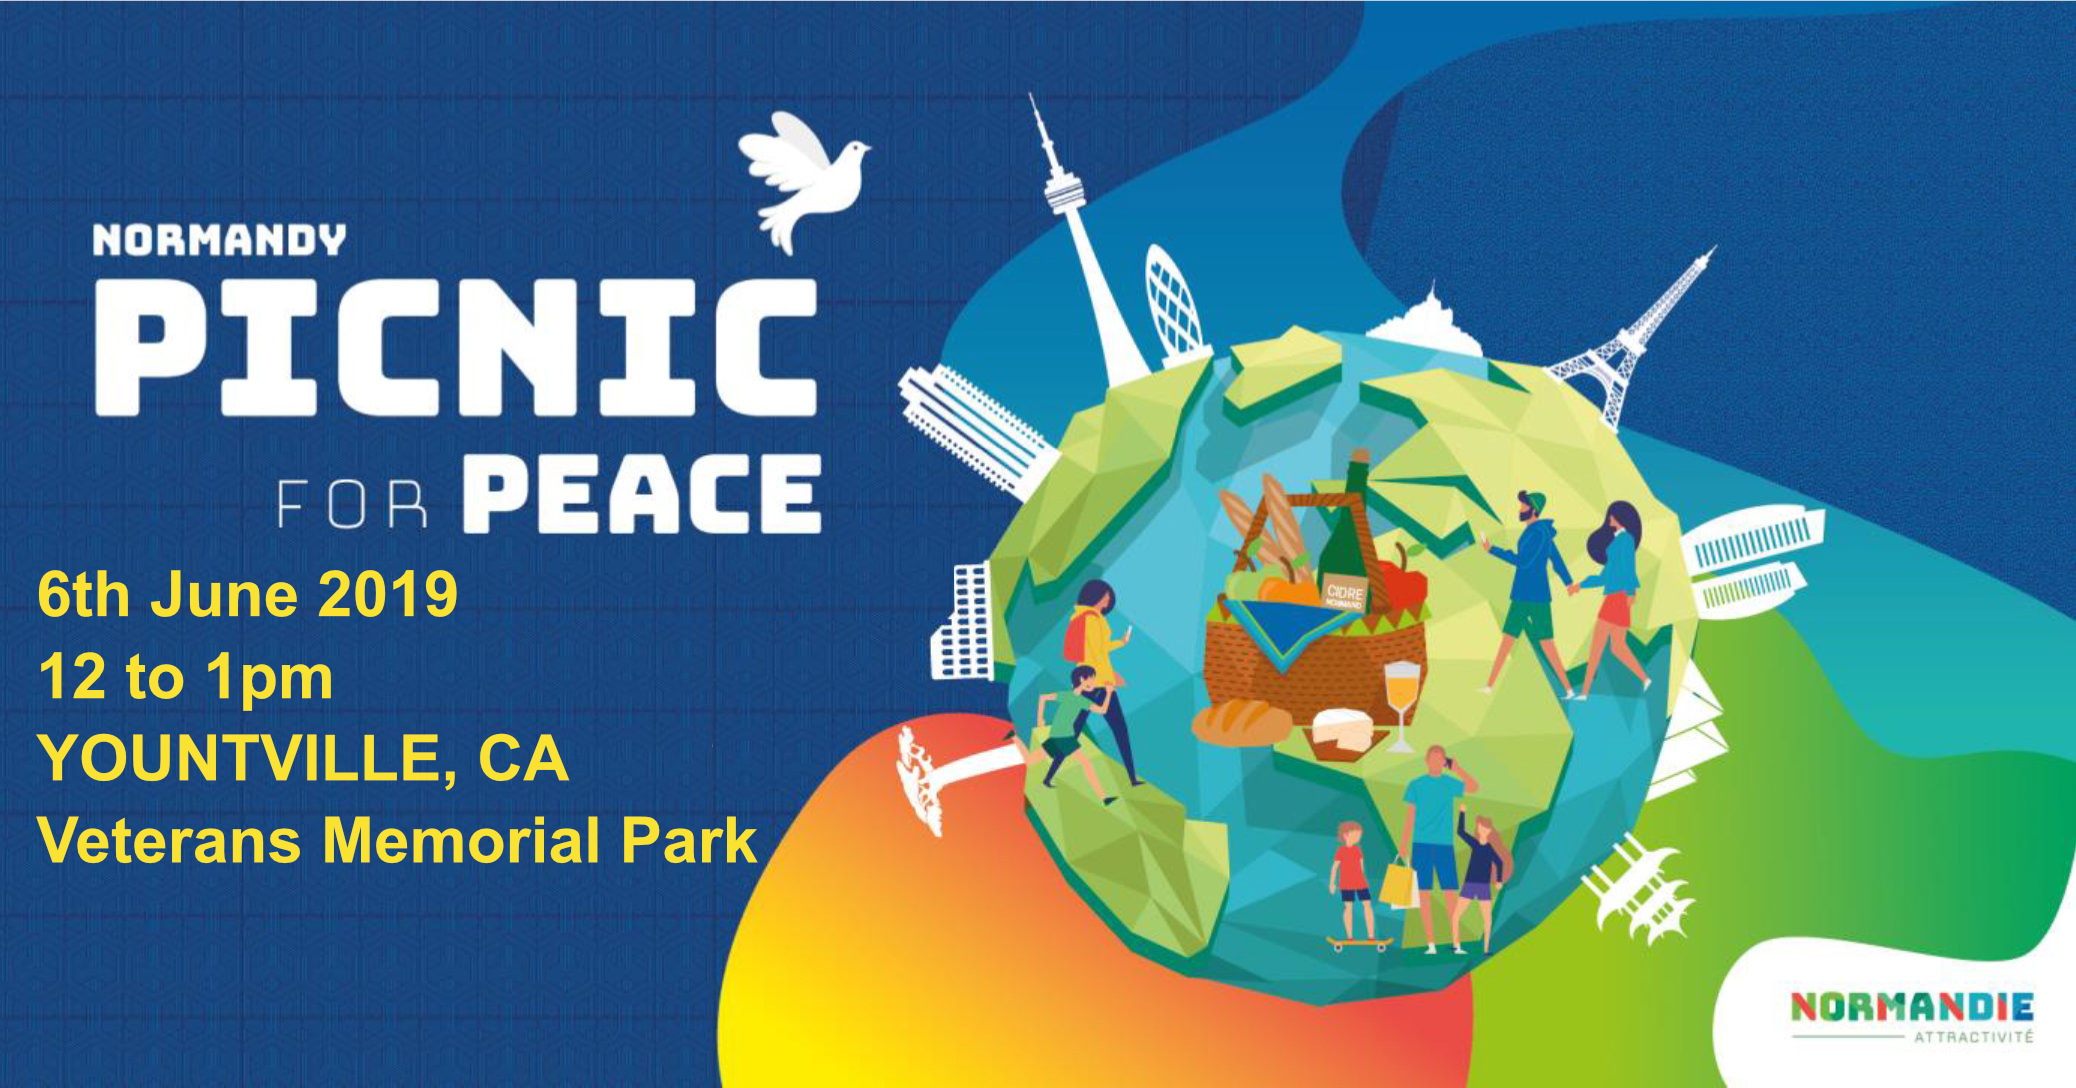 Picnic For Peace - Thursday, June 6th - 12pm - 1pm at Veterans Memorial Park, Yountville, CAJoin us for a casual